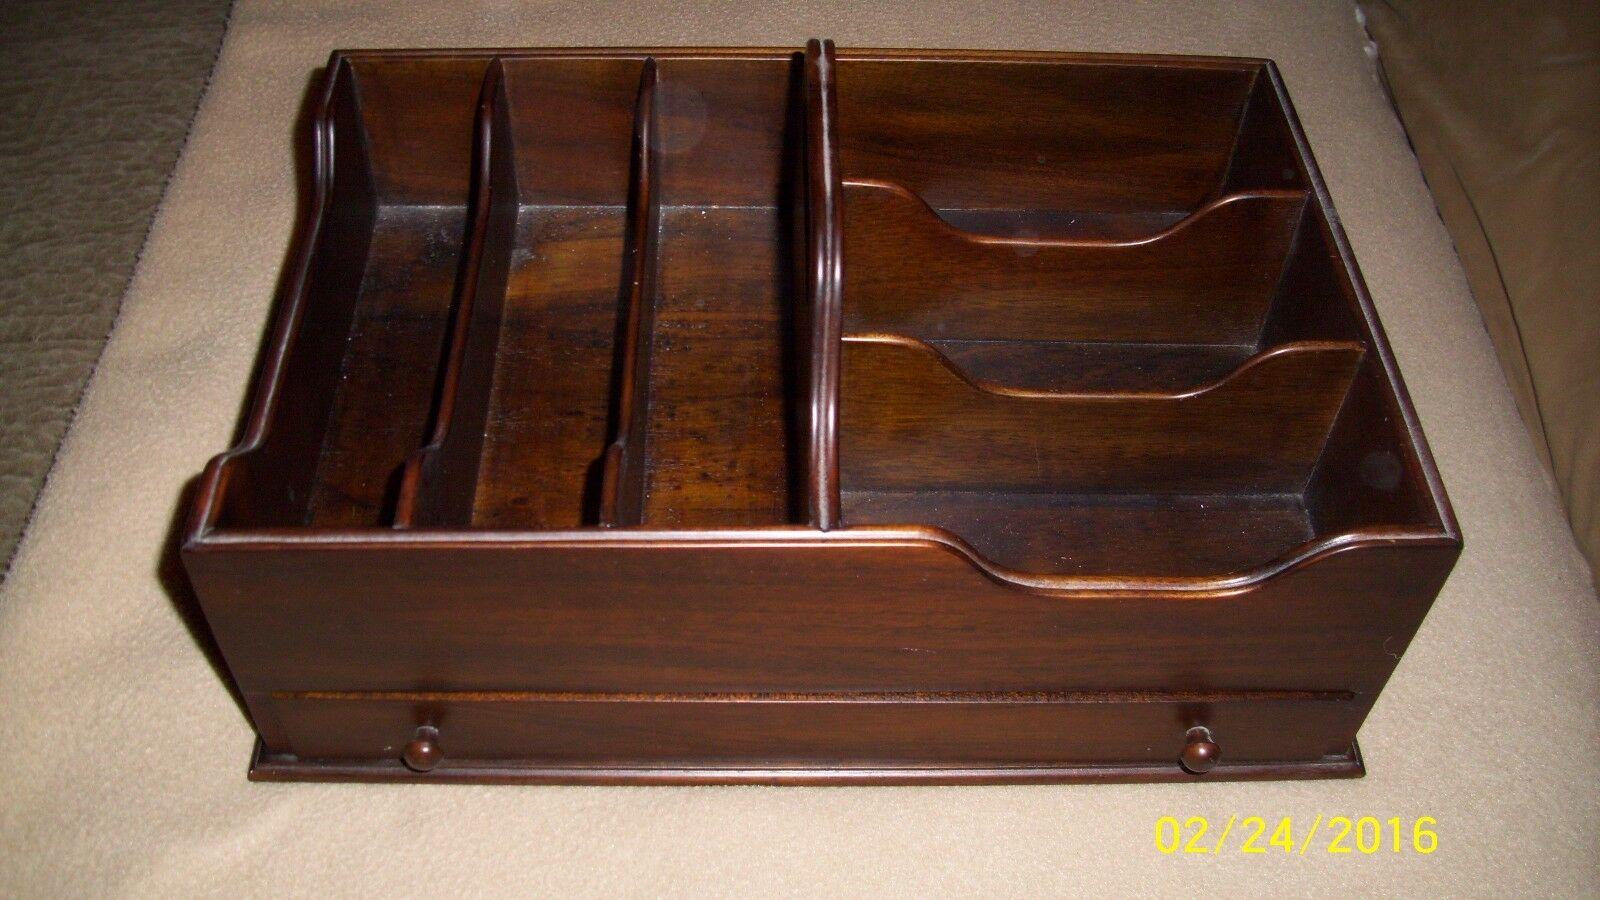 Solid Mahogany Desktop Organizer with 6 Compartments, Drawer and Handle